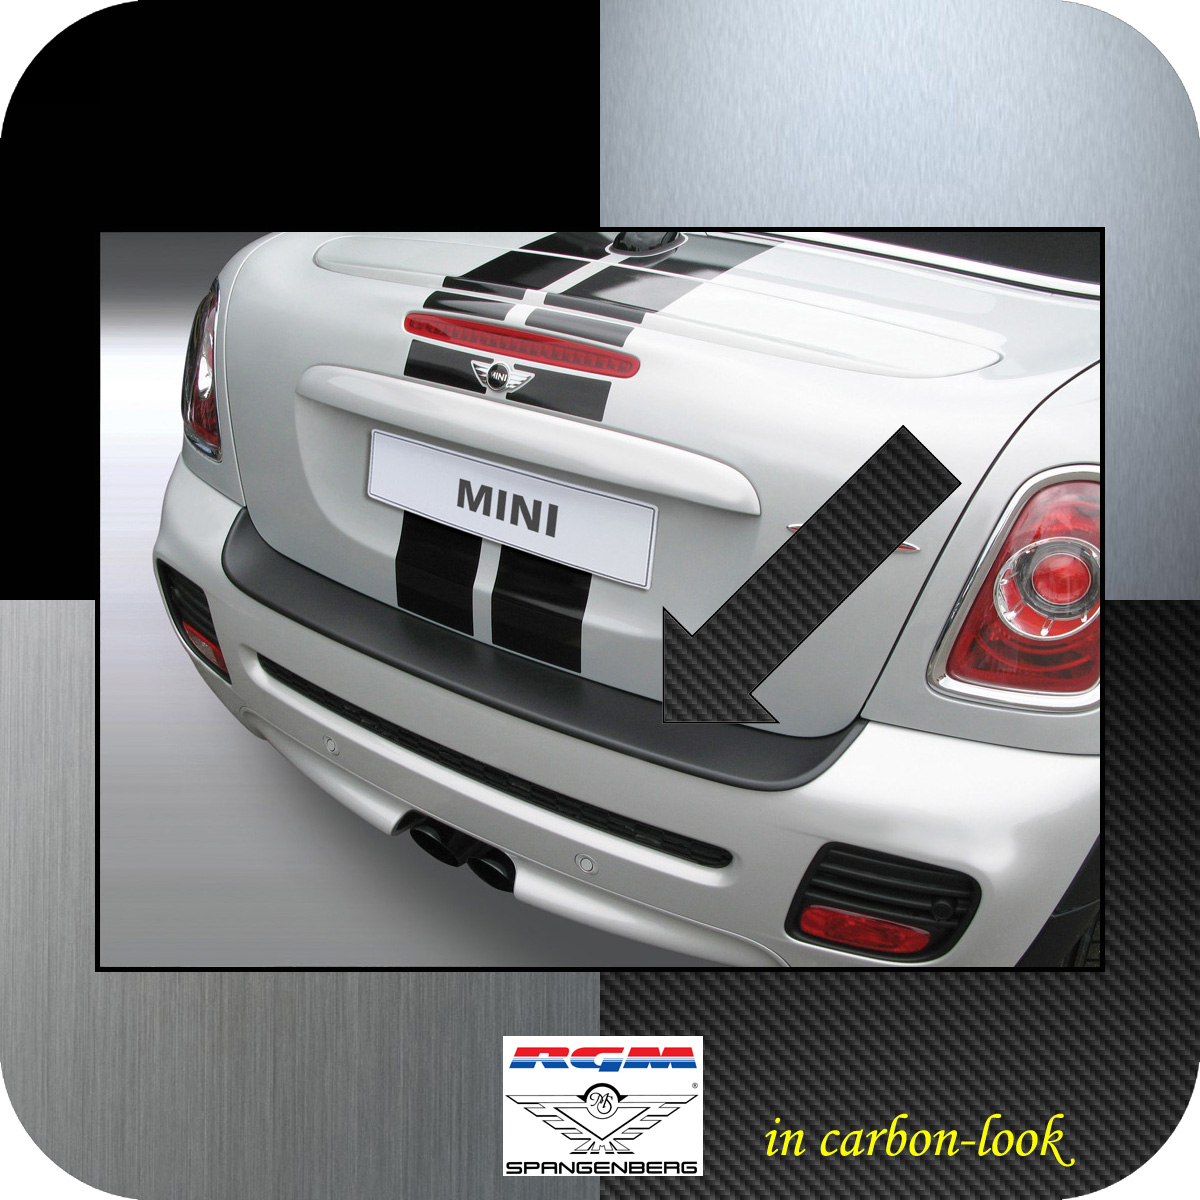 Ladekantenschutz Carbon-Look Mini BMW Cabrio One Cooper R57 2009-15 3509102